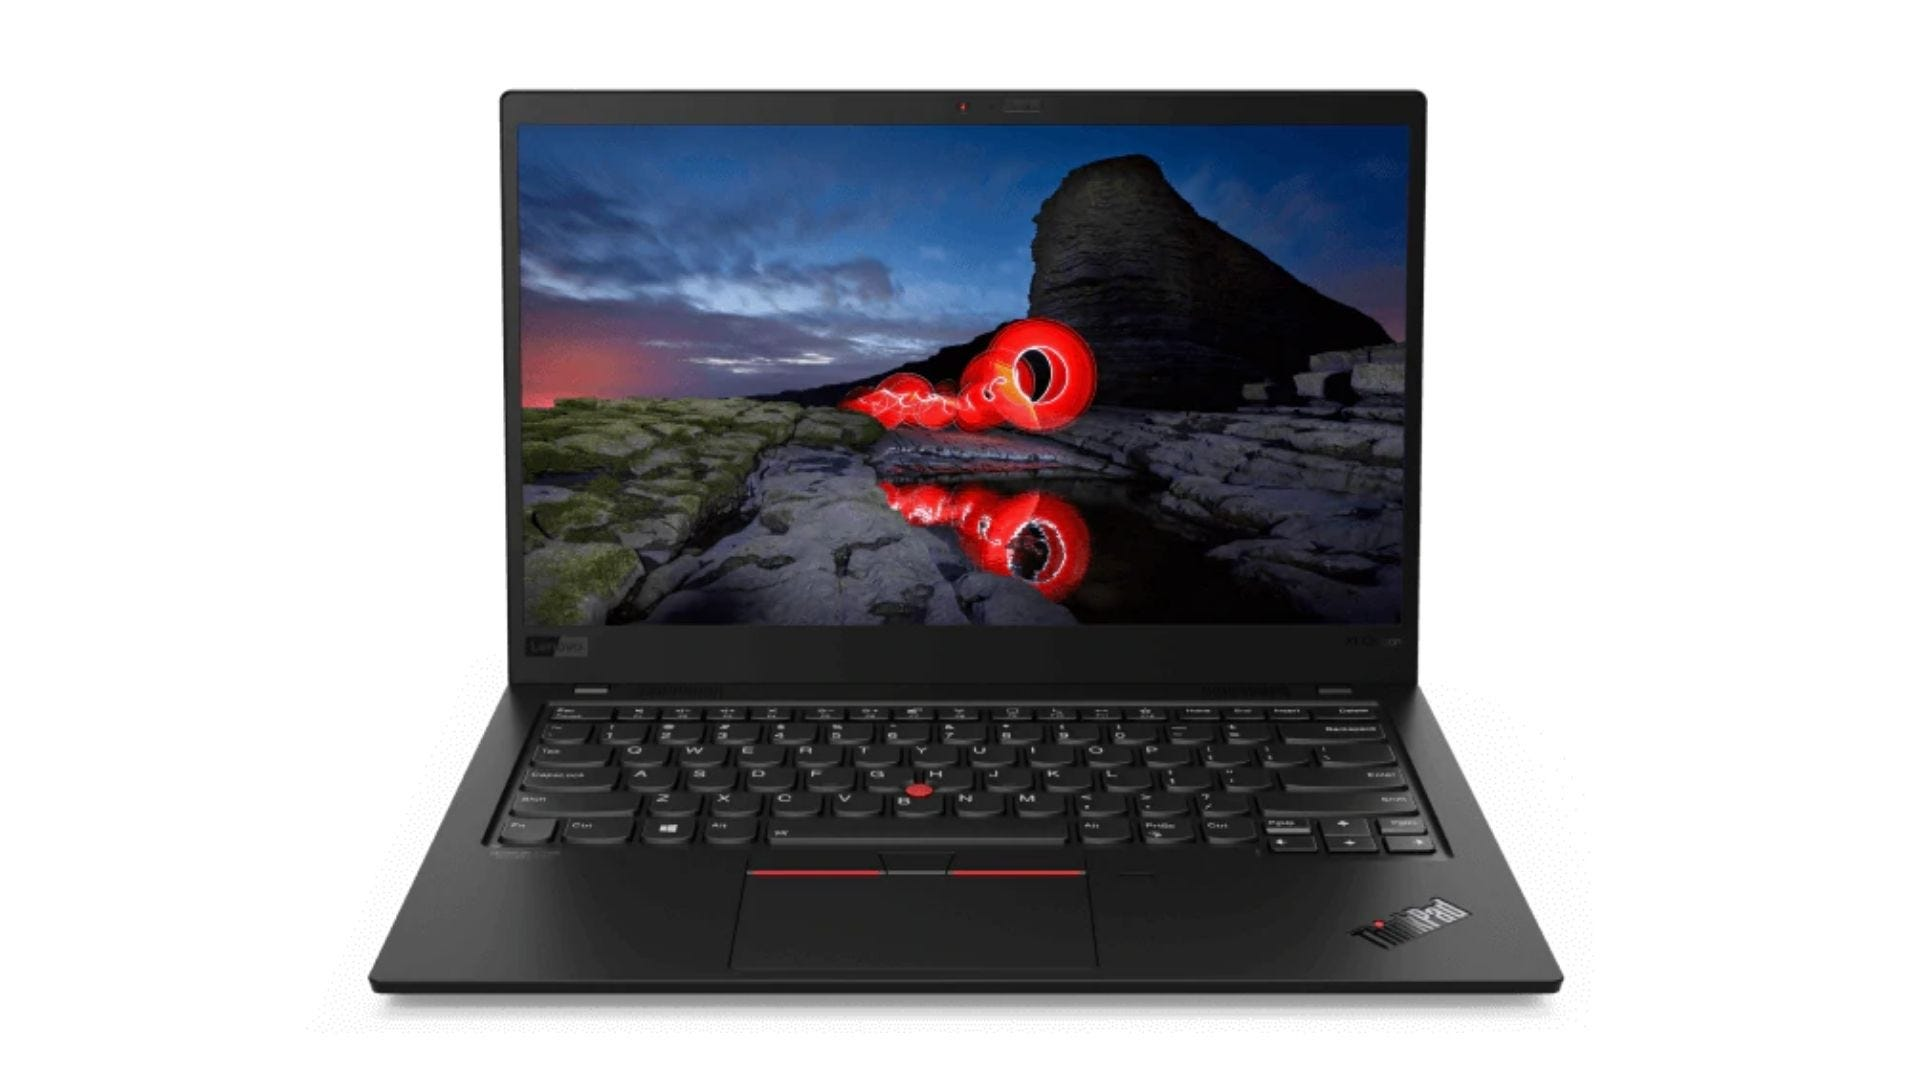 ThinkPad X1 Carbon Gen 8 (14